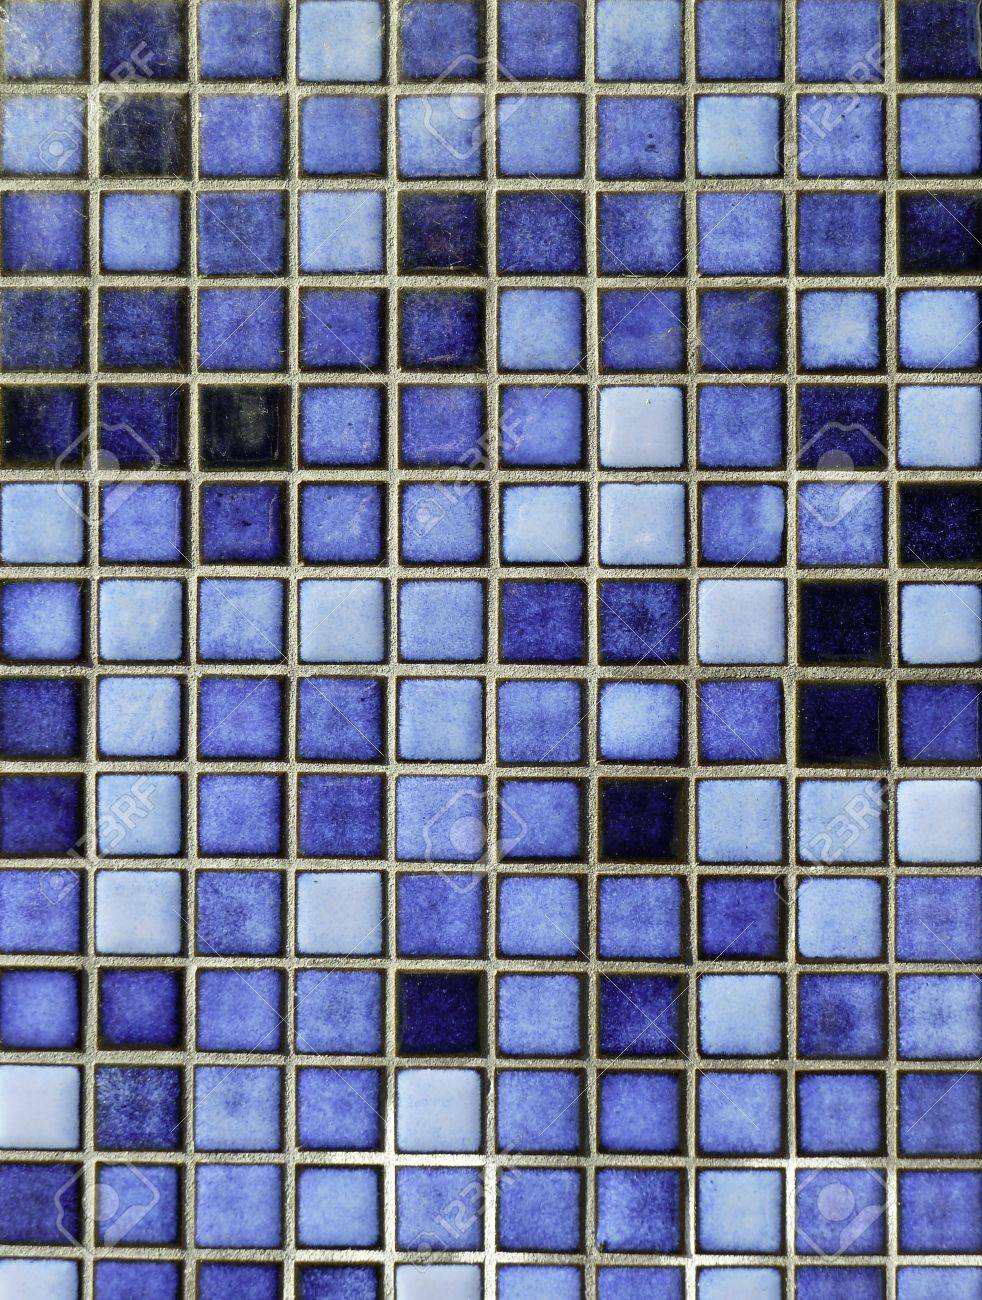 Blue ceramic tiles horizontal stock photo picture and royalty free blue ceramic tiles horizontal stock photo 9129754 dailygadgetfo Gallery